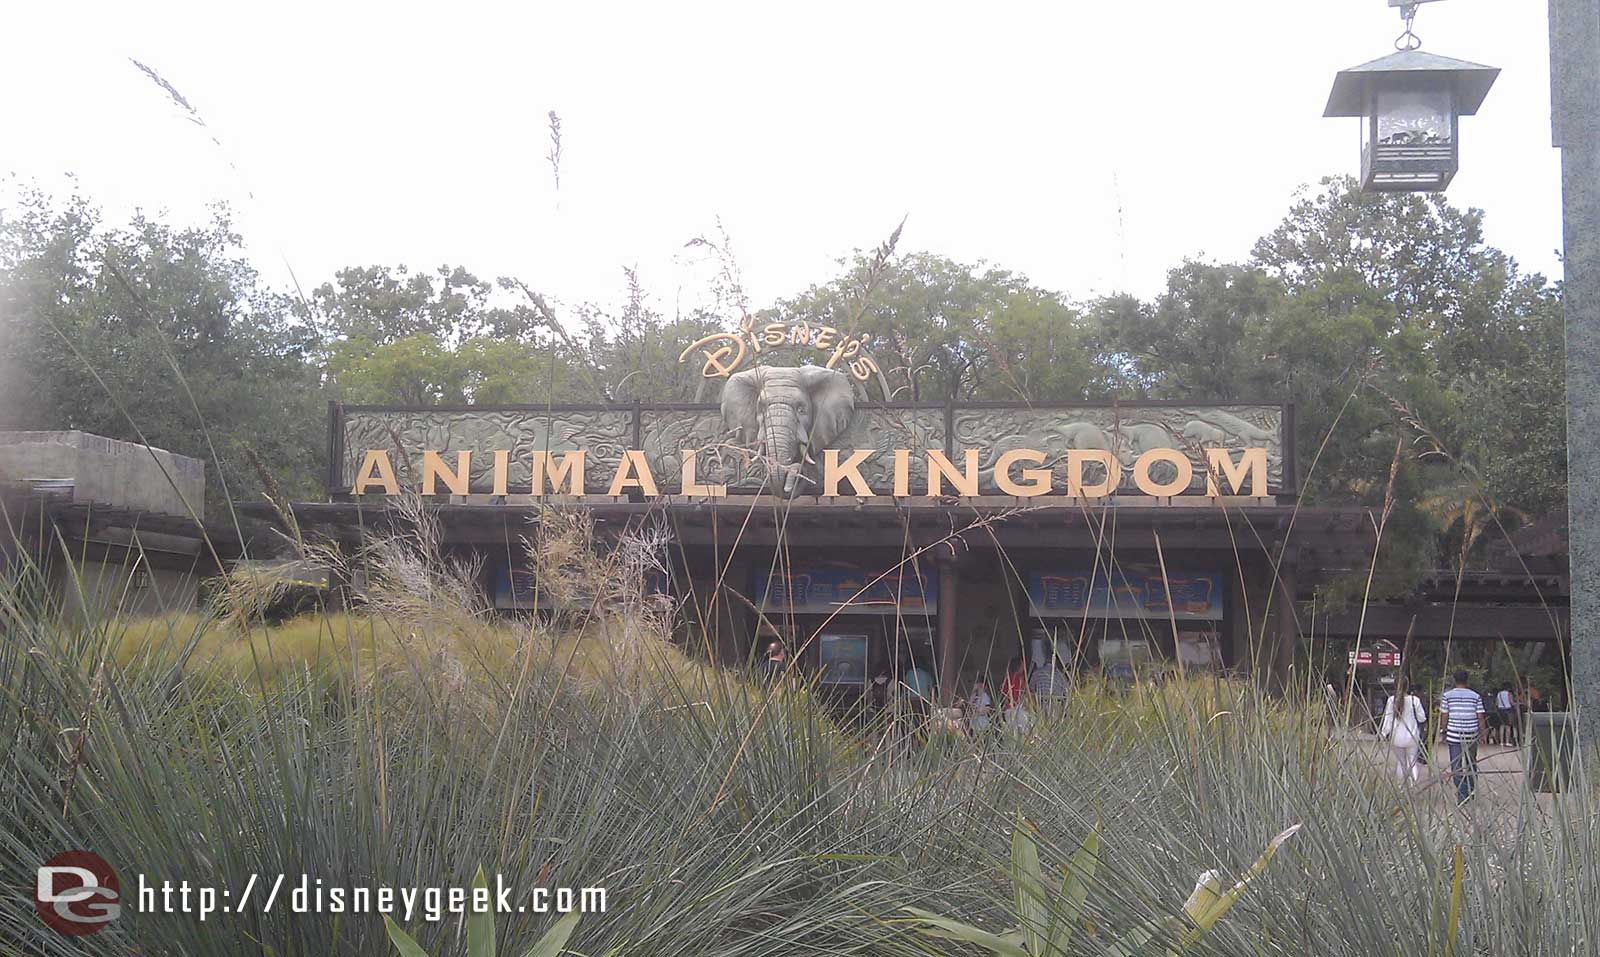 Arriving at Disney's Animal Kingdom for the afternoon.